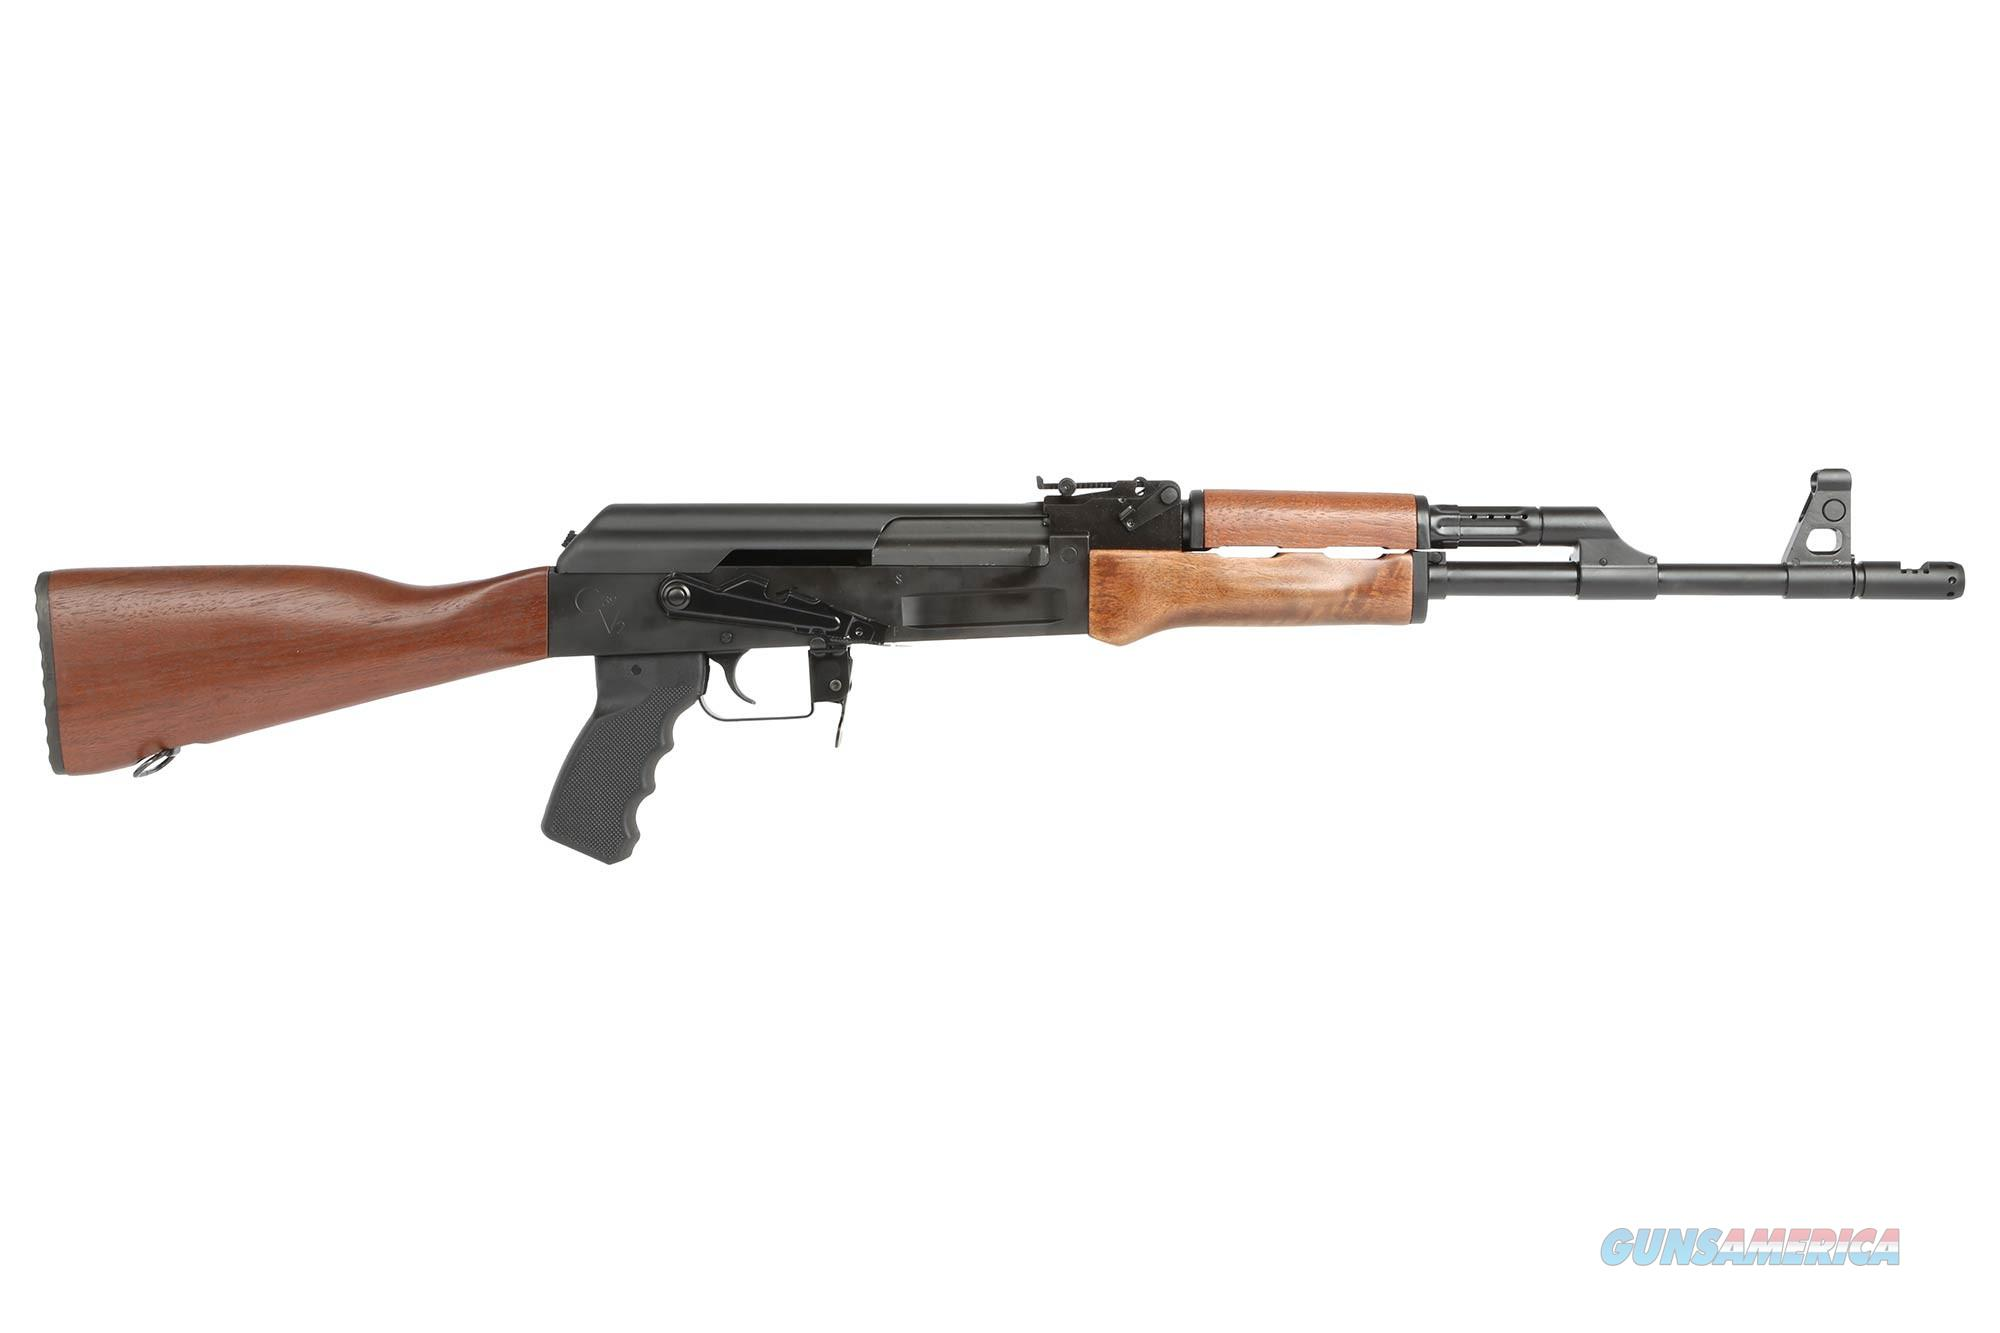 "Century Red Army C39v2 Rifle 7.62x39mm 16.5"" RI2398-N   Guns > Rifles > Century International Arms - Rifles > Rifles"